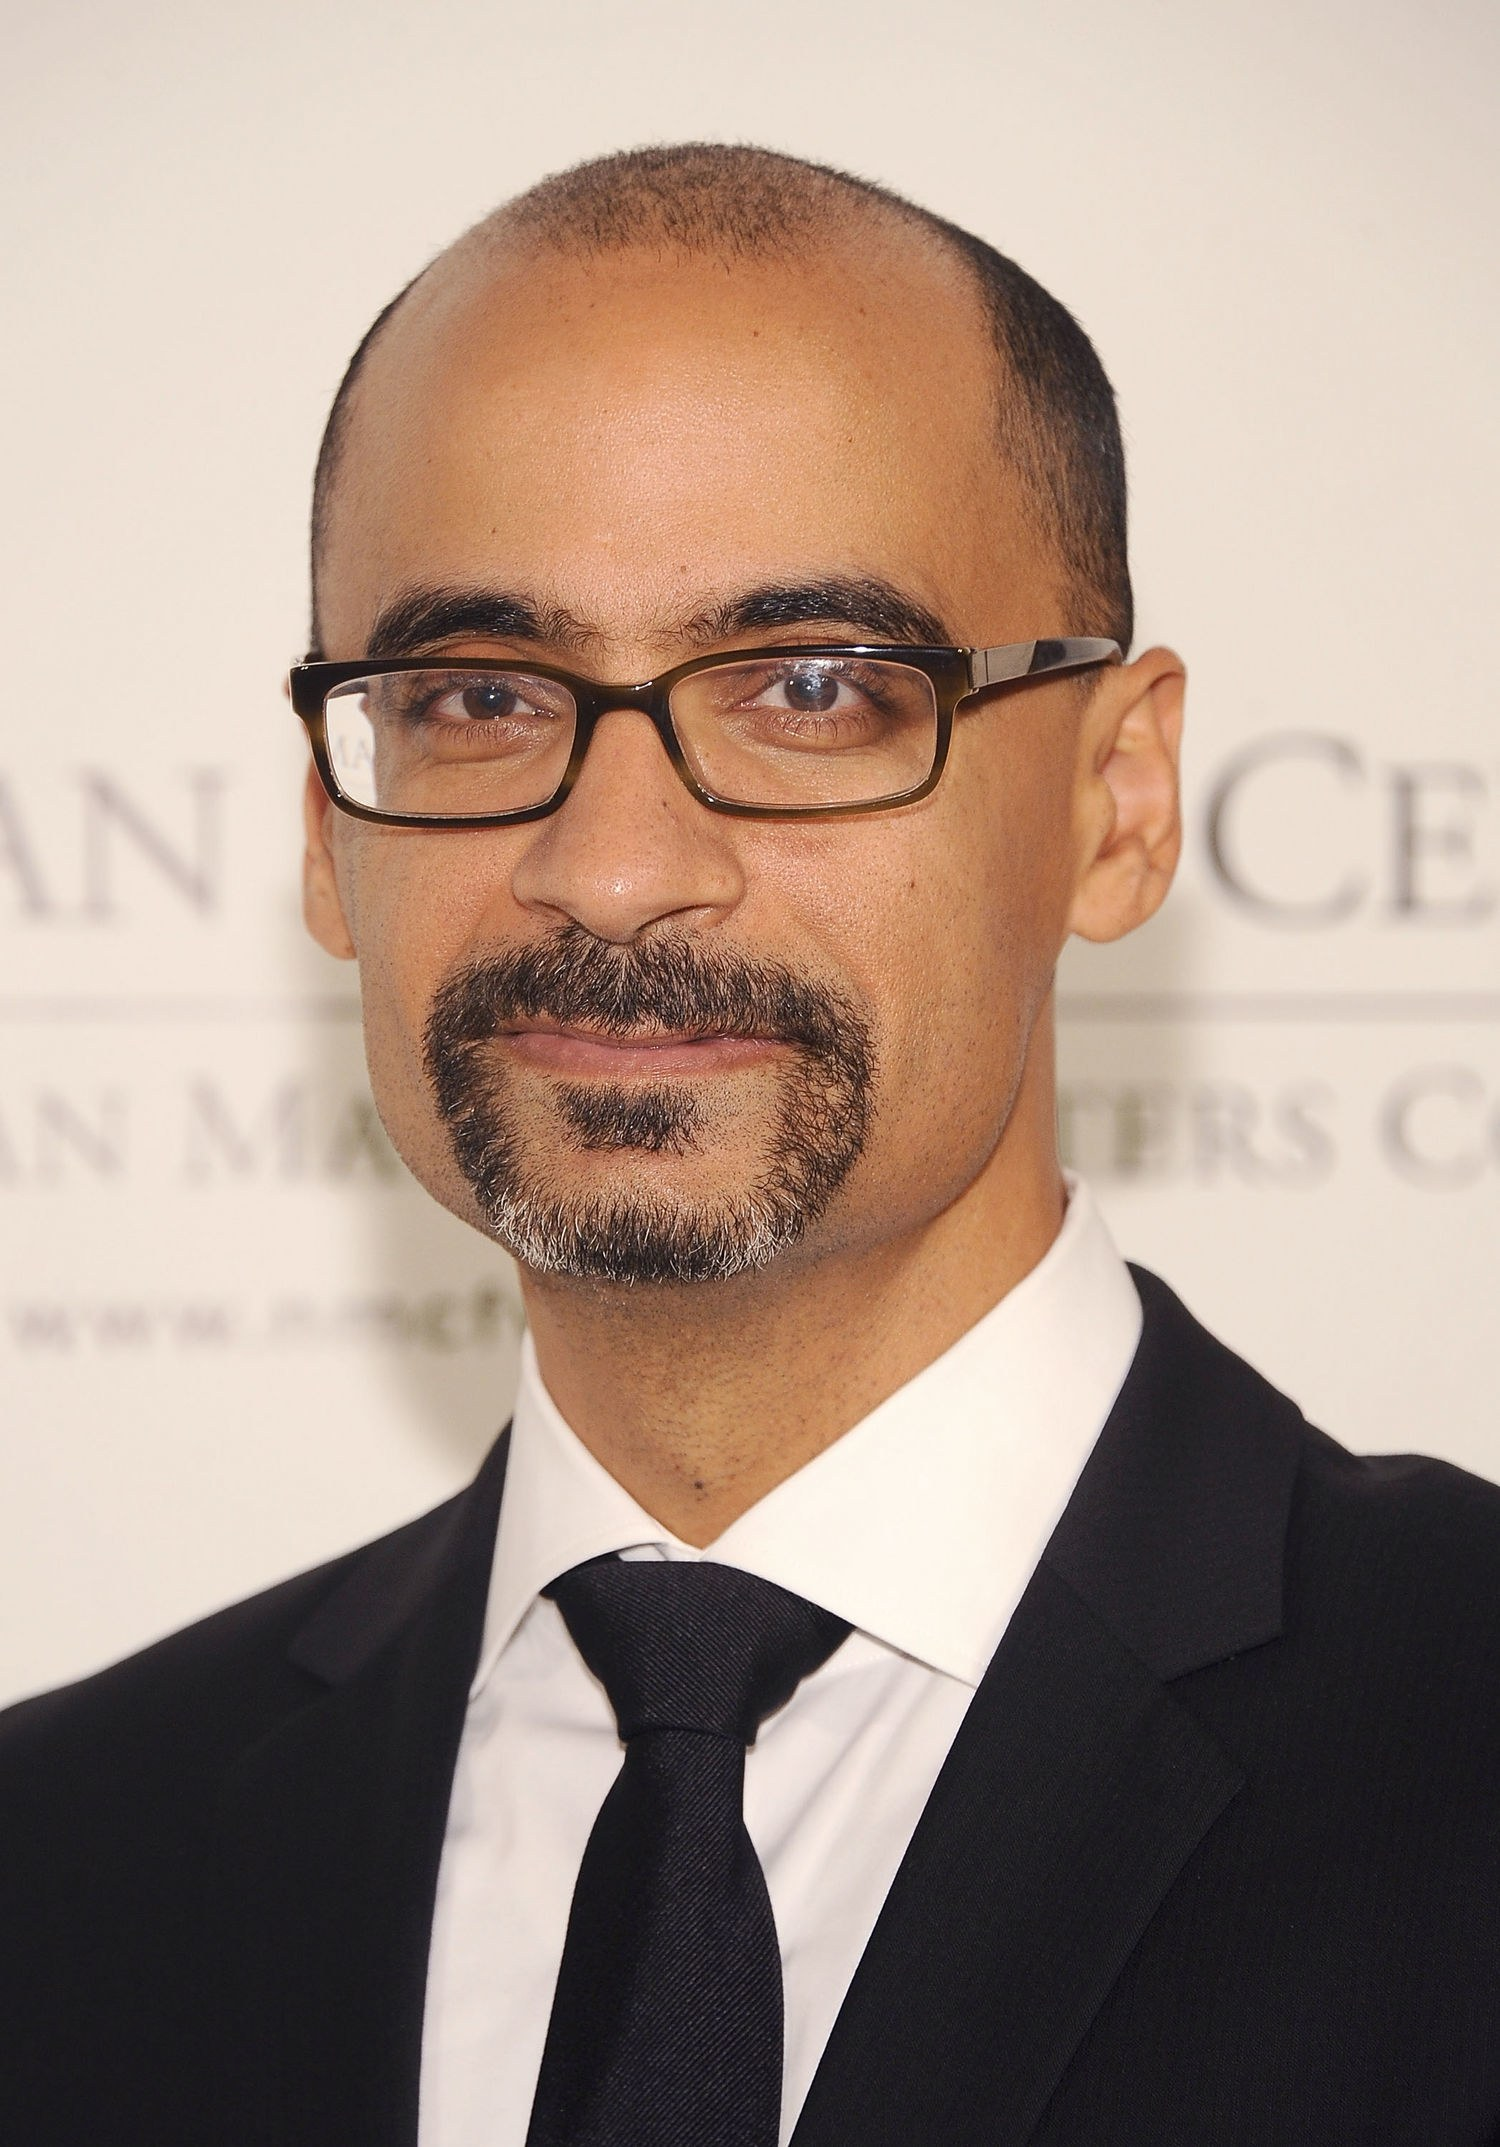 beauty-2014-06-junot-diaz-beauty-main.jpg